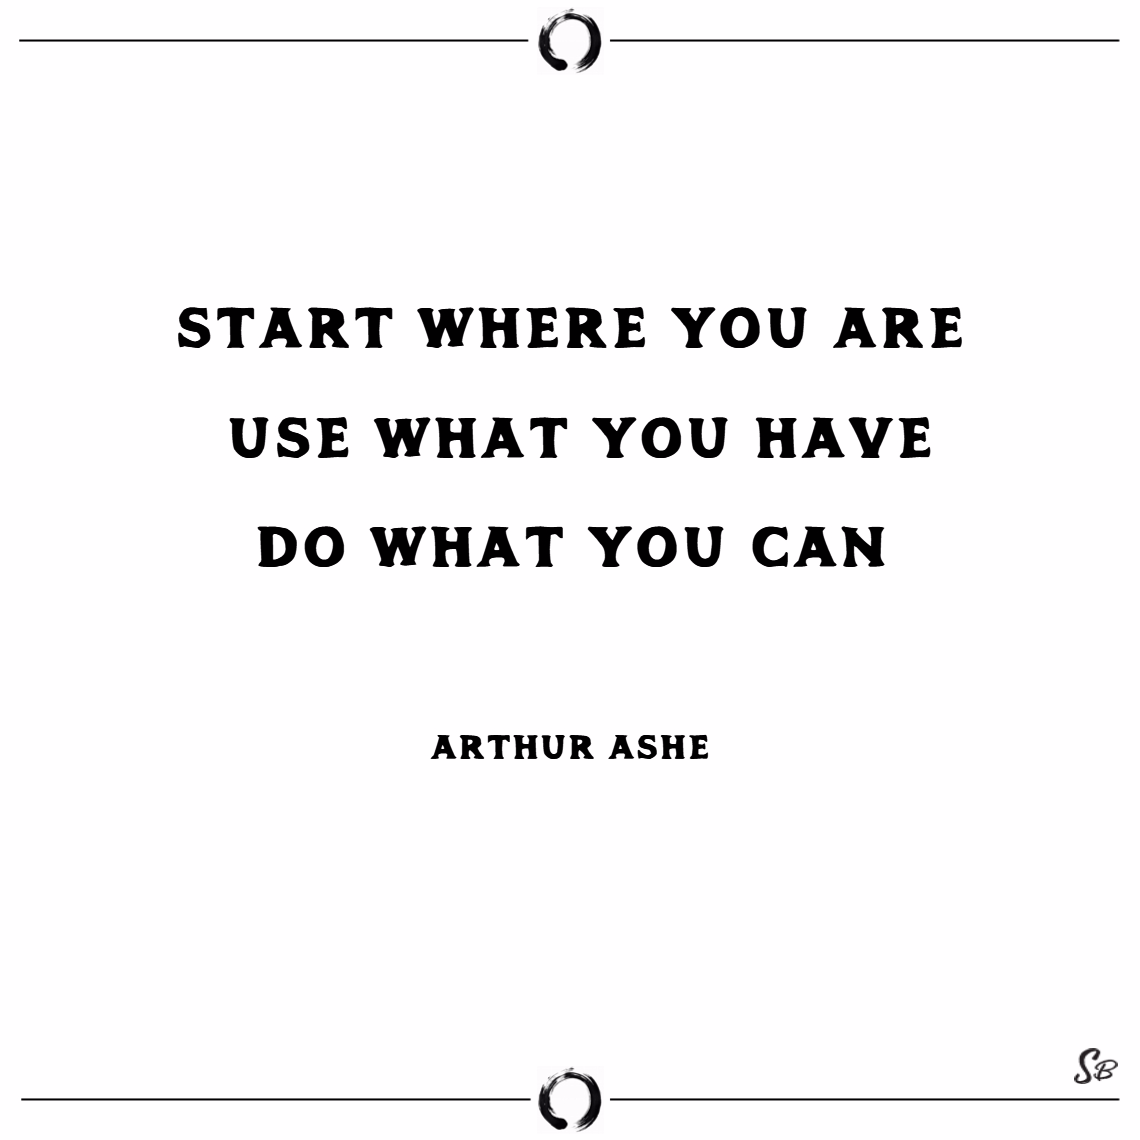 Start where you are. use what you have. do what you can. – arthur ashe words of encouragement